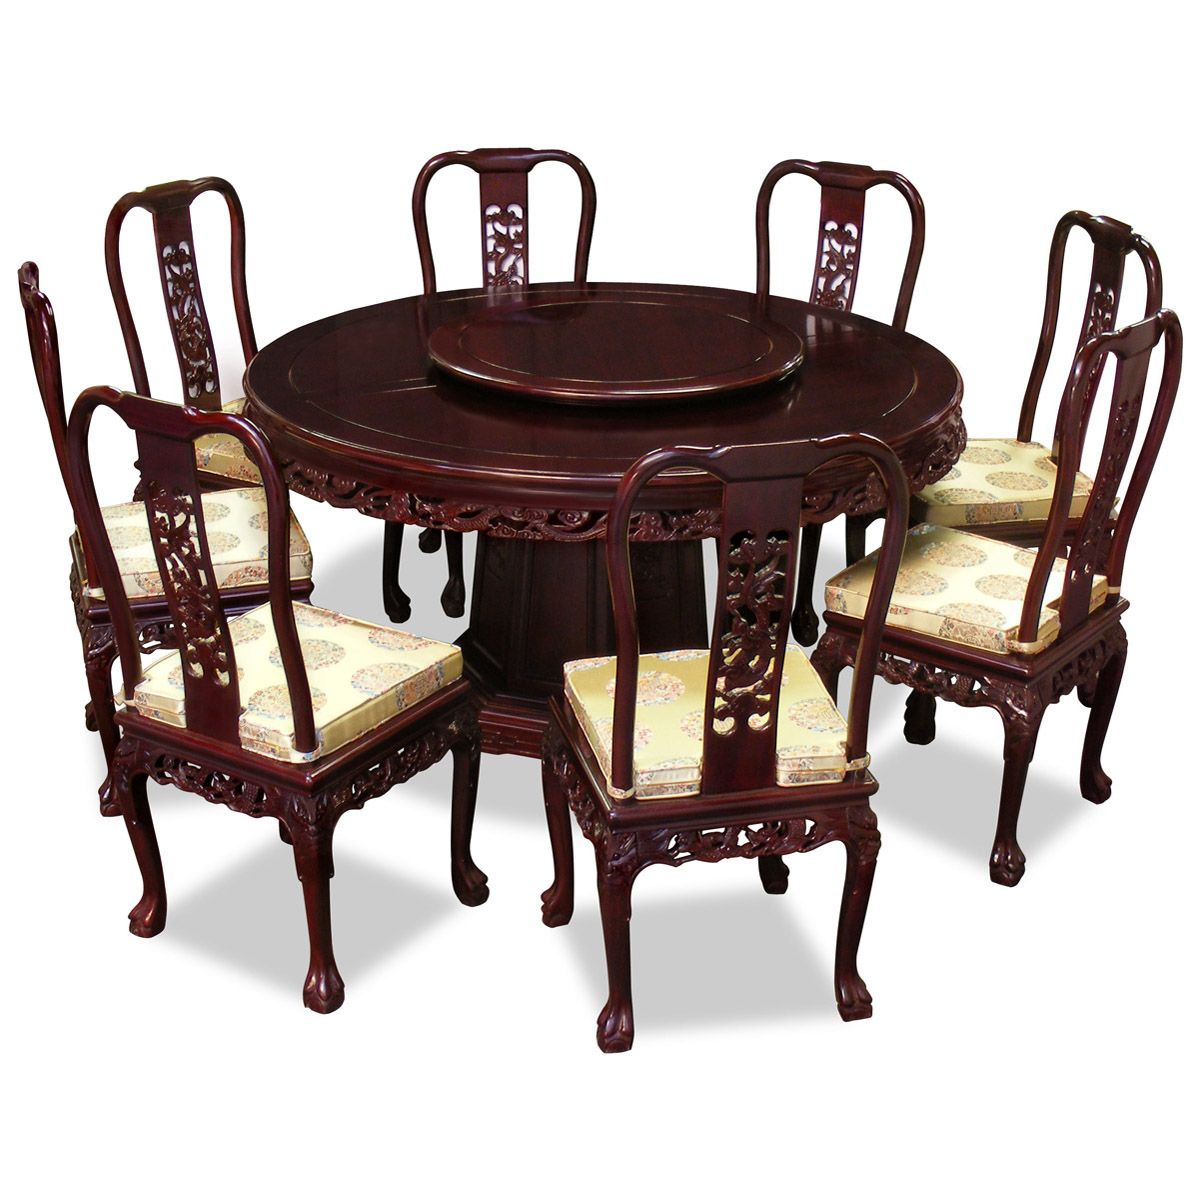 Runde Esstische Esszimmermöbel 60in Rosewood Imperial Dragon Design Round Dining Table With 8